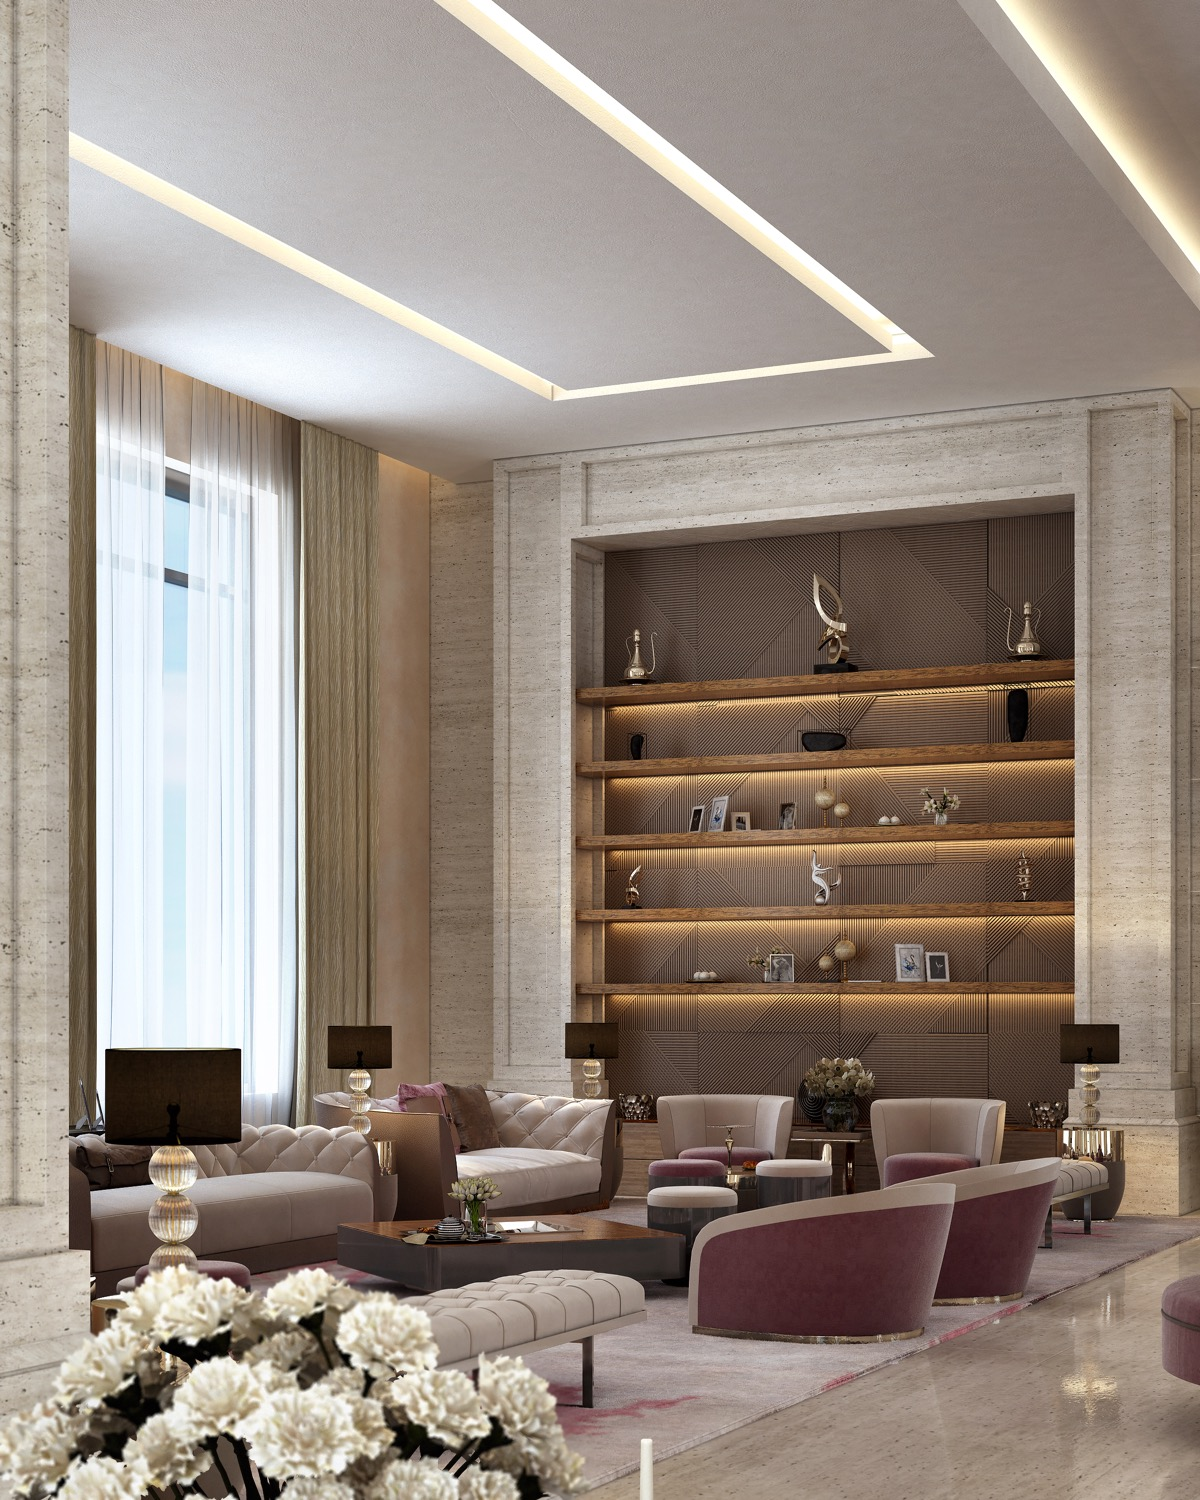 18 Luxury Living Room Ideas And What You Can Learn From Them Archline Xp